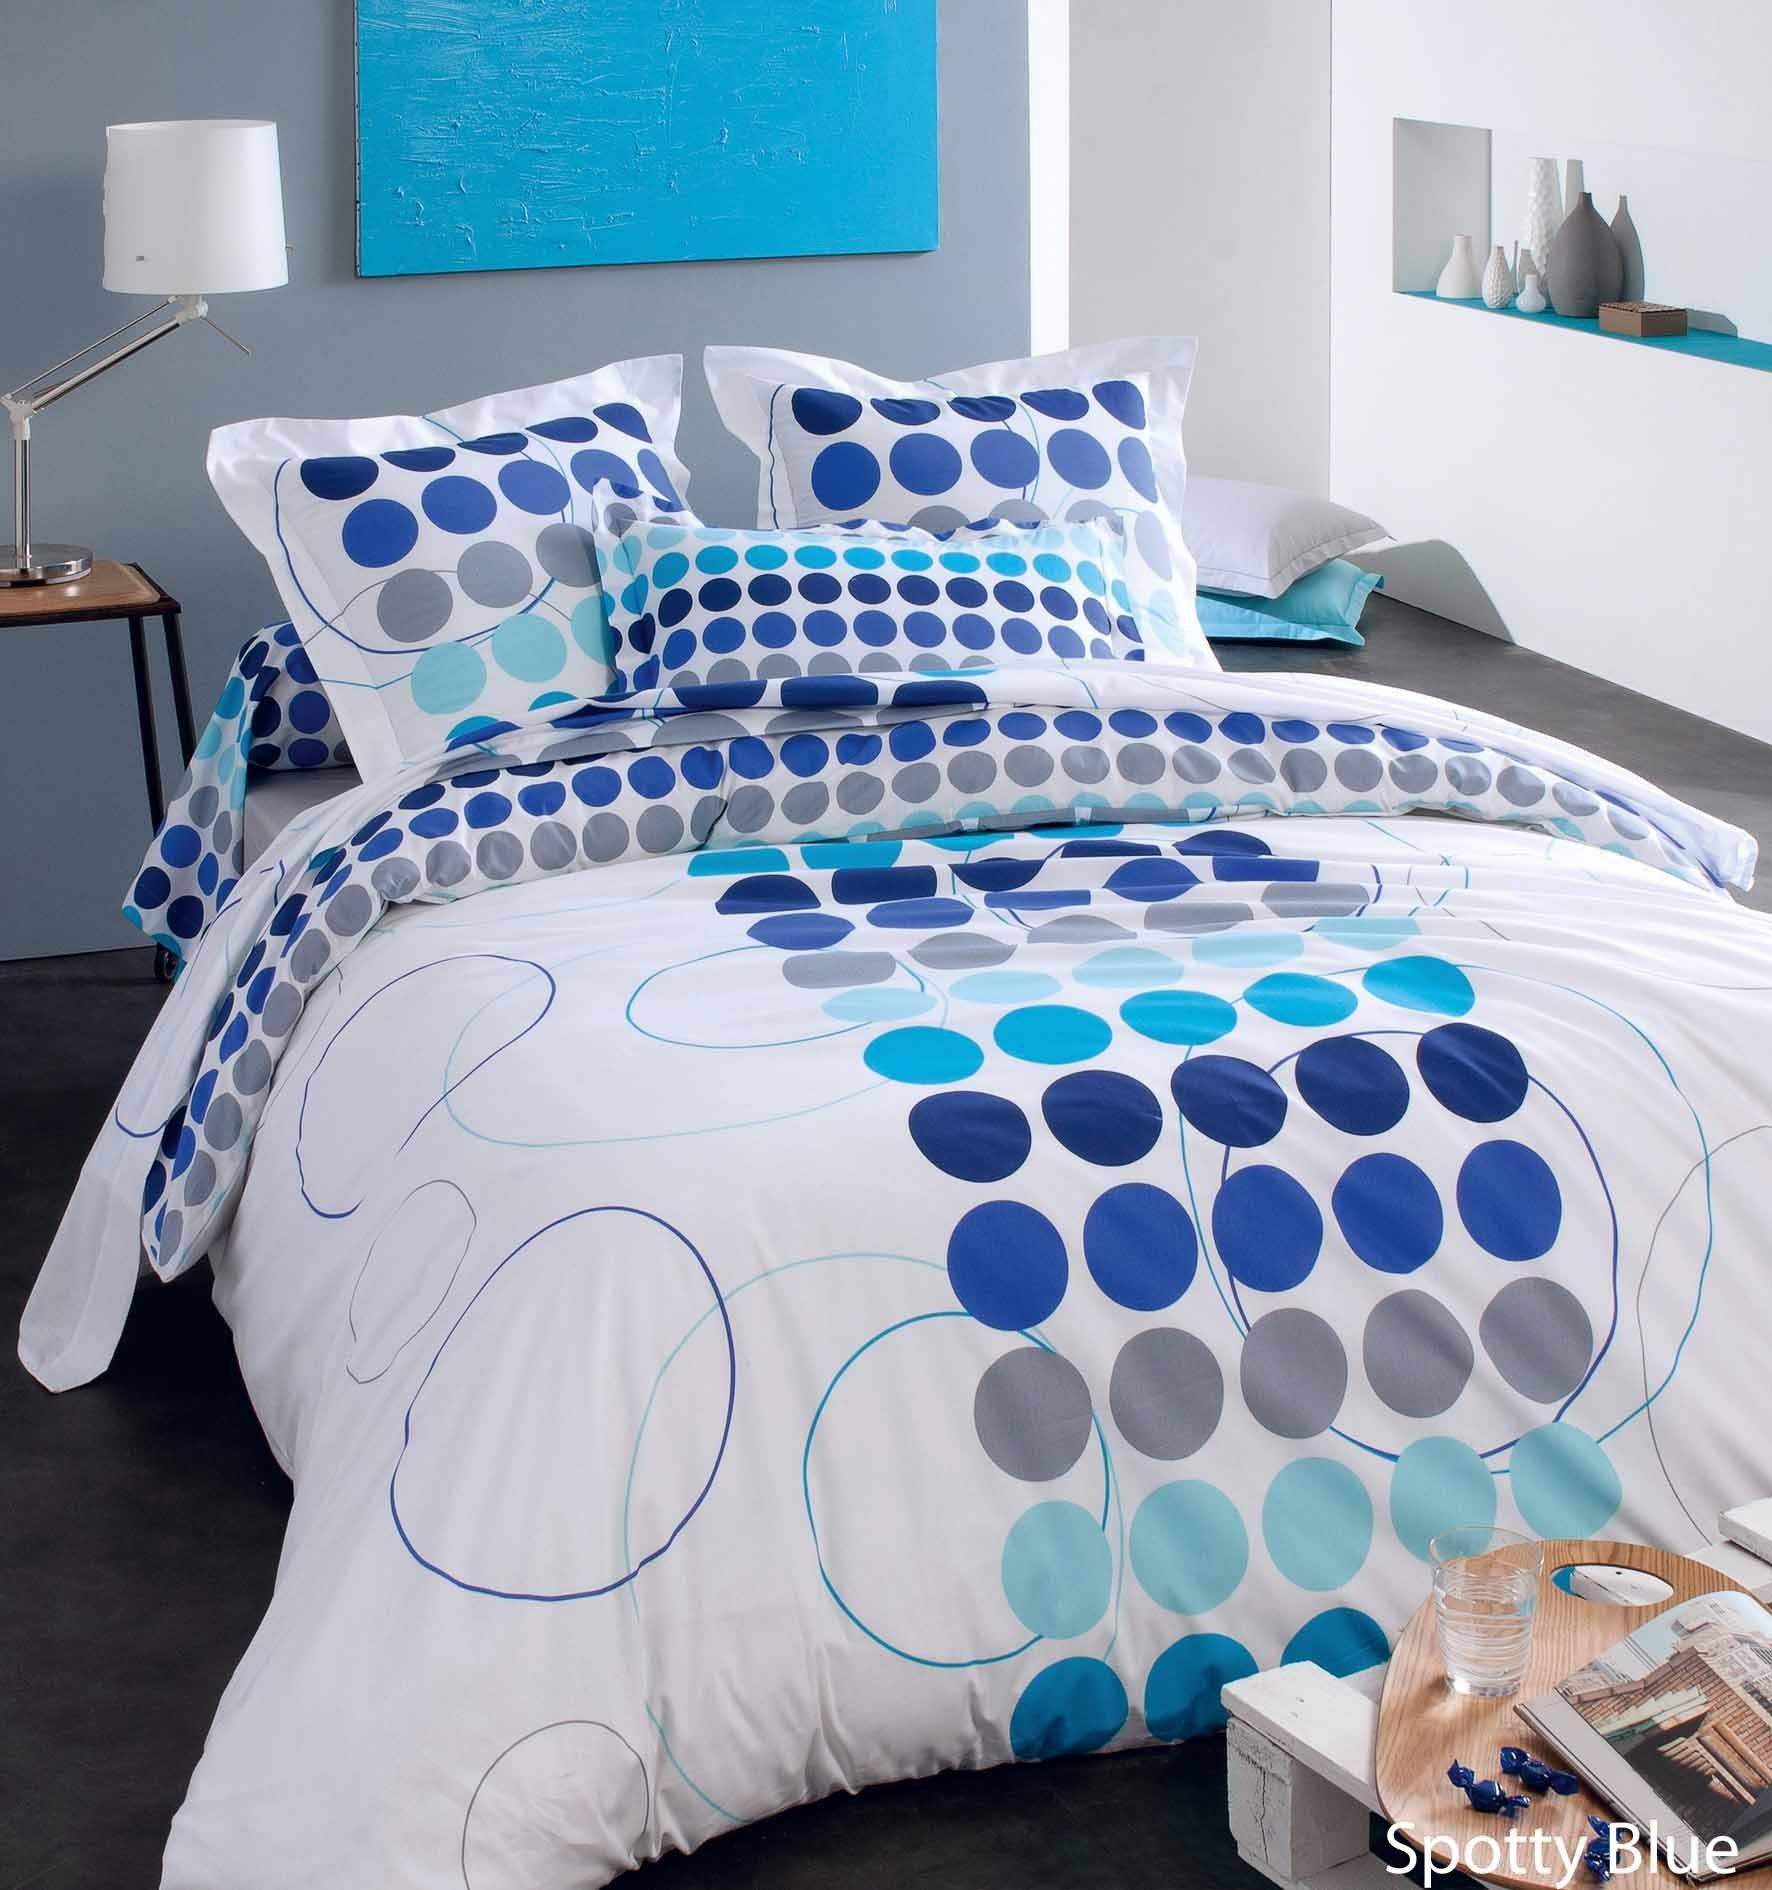 housse de couette spotty bleu coton 260x240 ebay. Black Bedroom Furniture Sets. Home Design Ideas